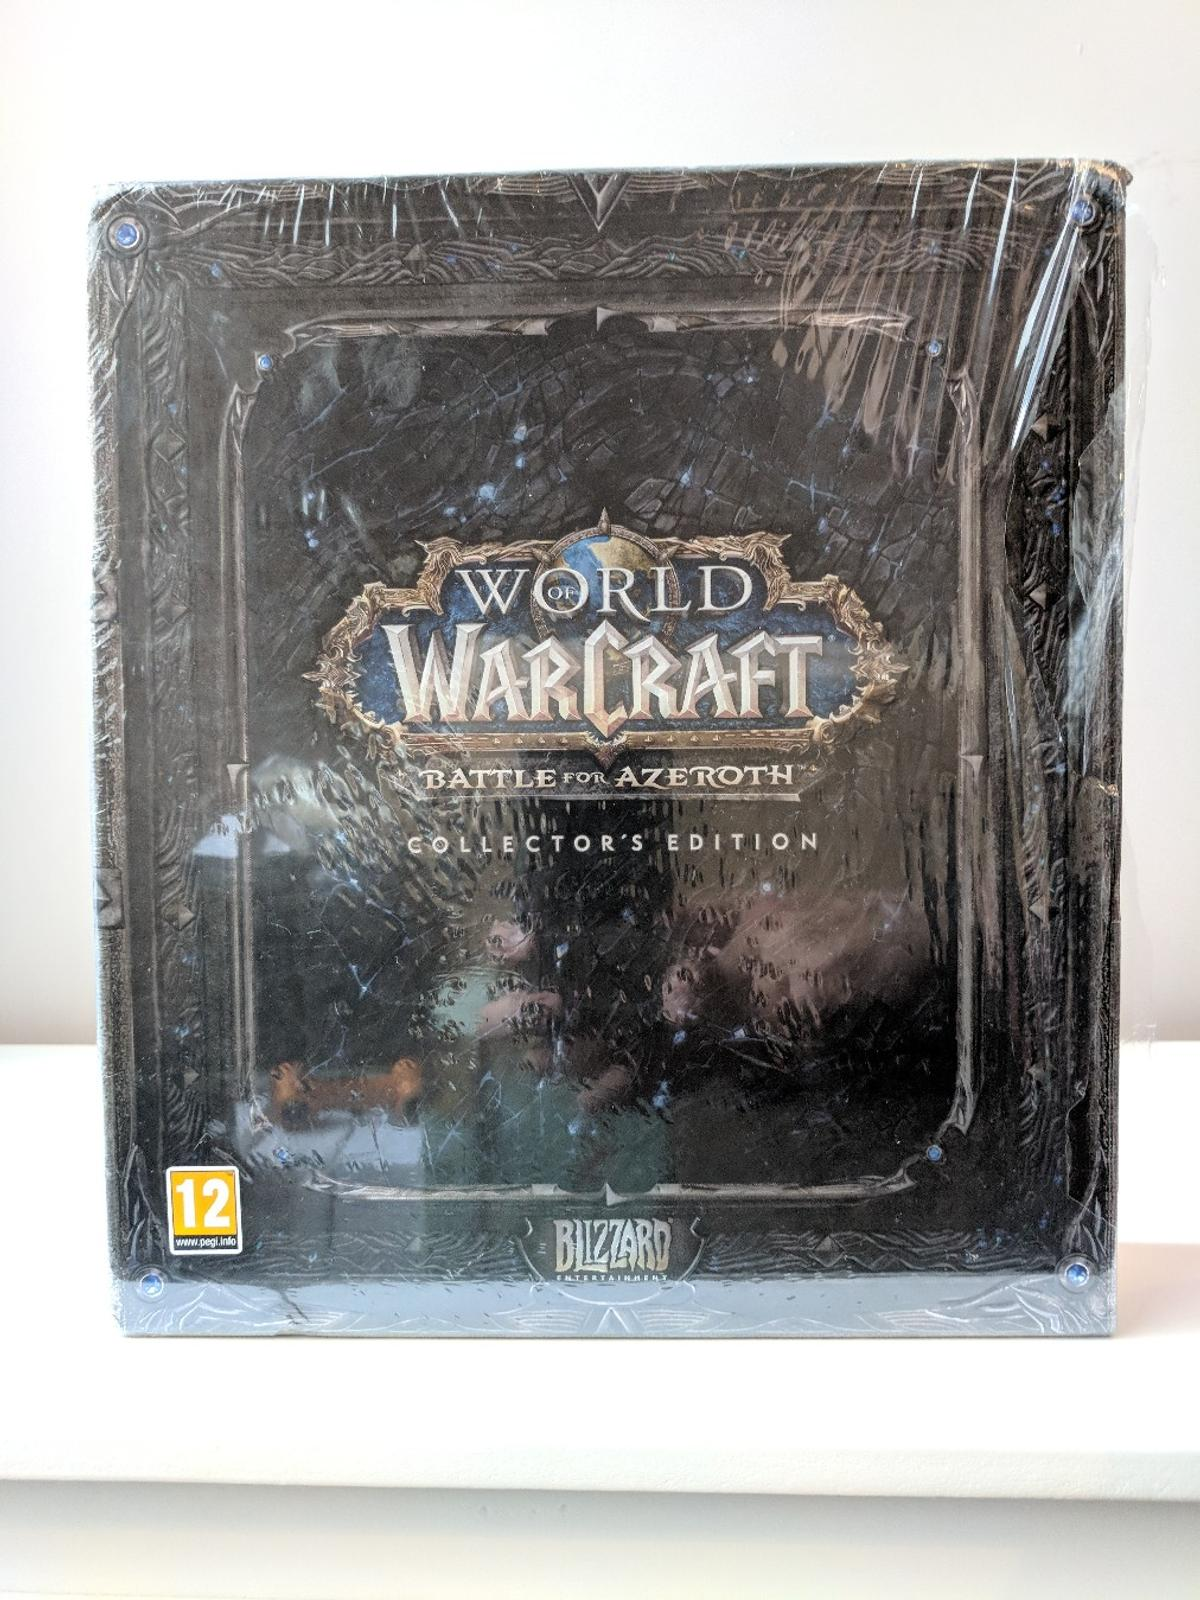 battle for azeroth collectors edition uk